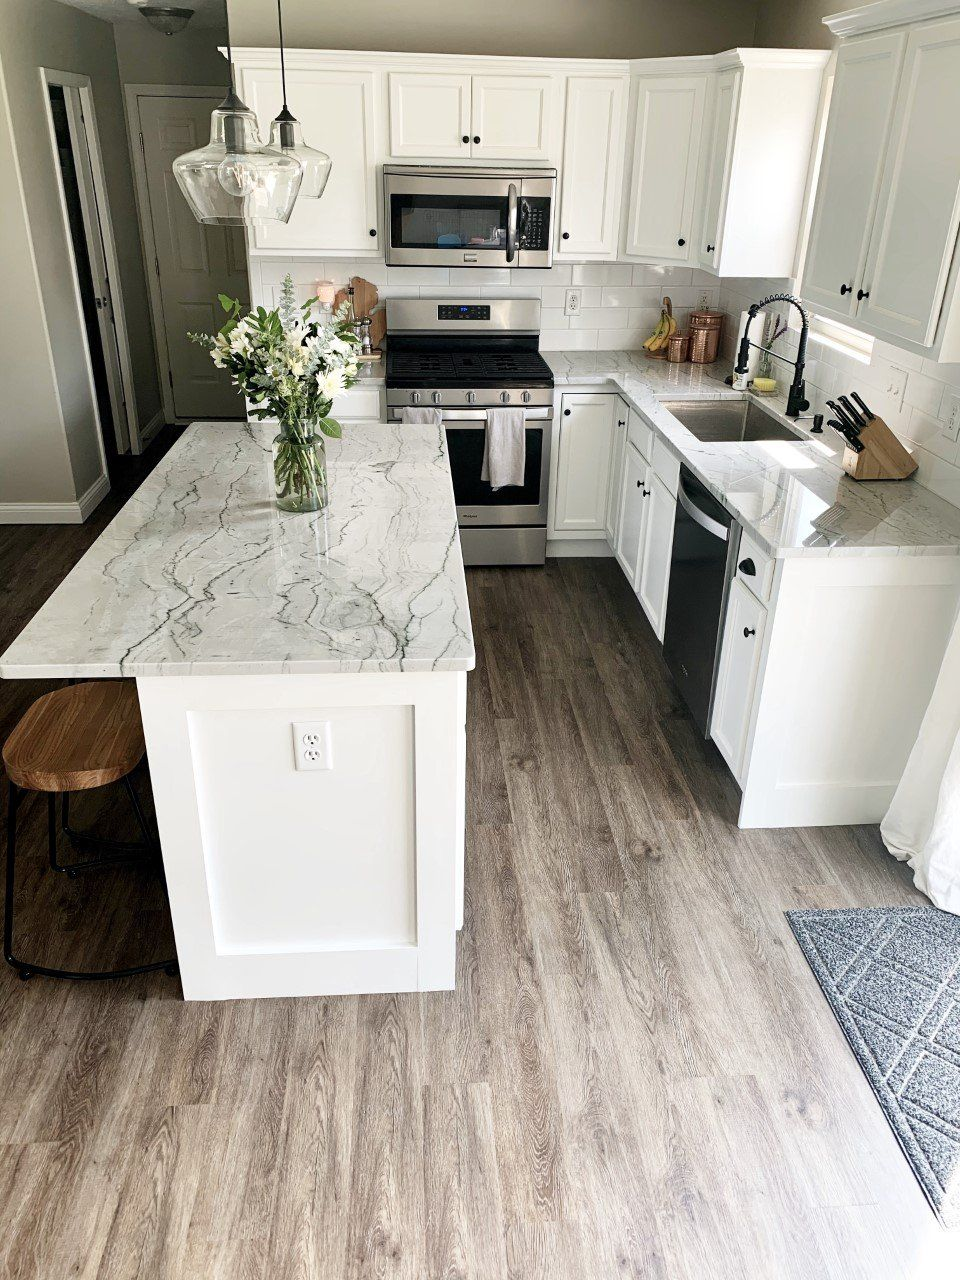 Top Kitchen Design Trends For 2021 The Latest Update Top Kitchen Designs Latest Kitchen Designs Kitchen Design Trends What's new in kitchen design